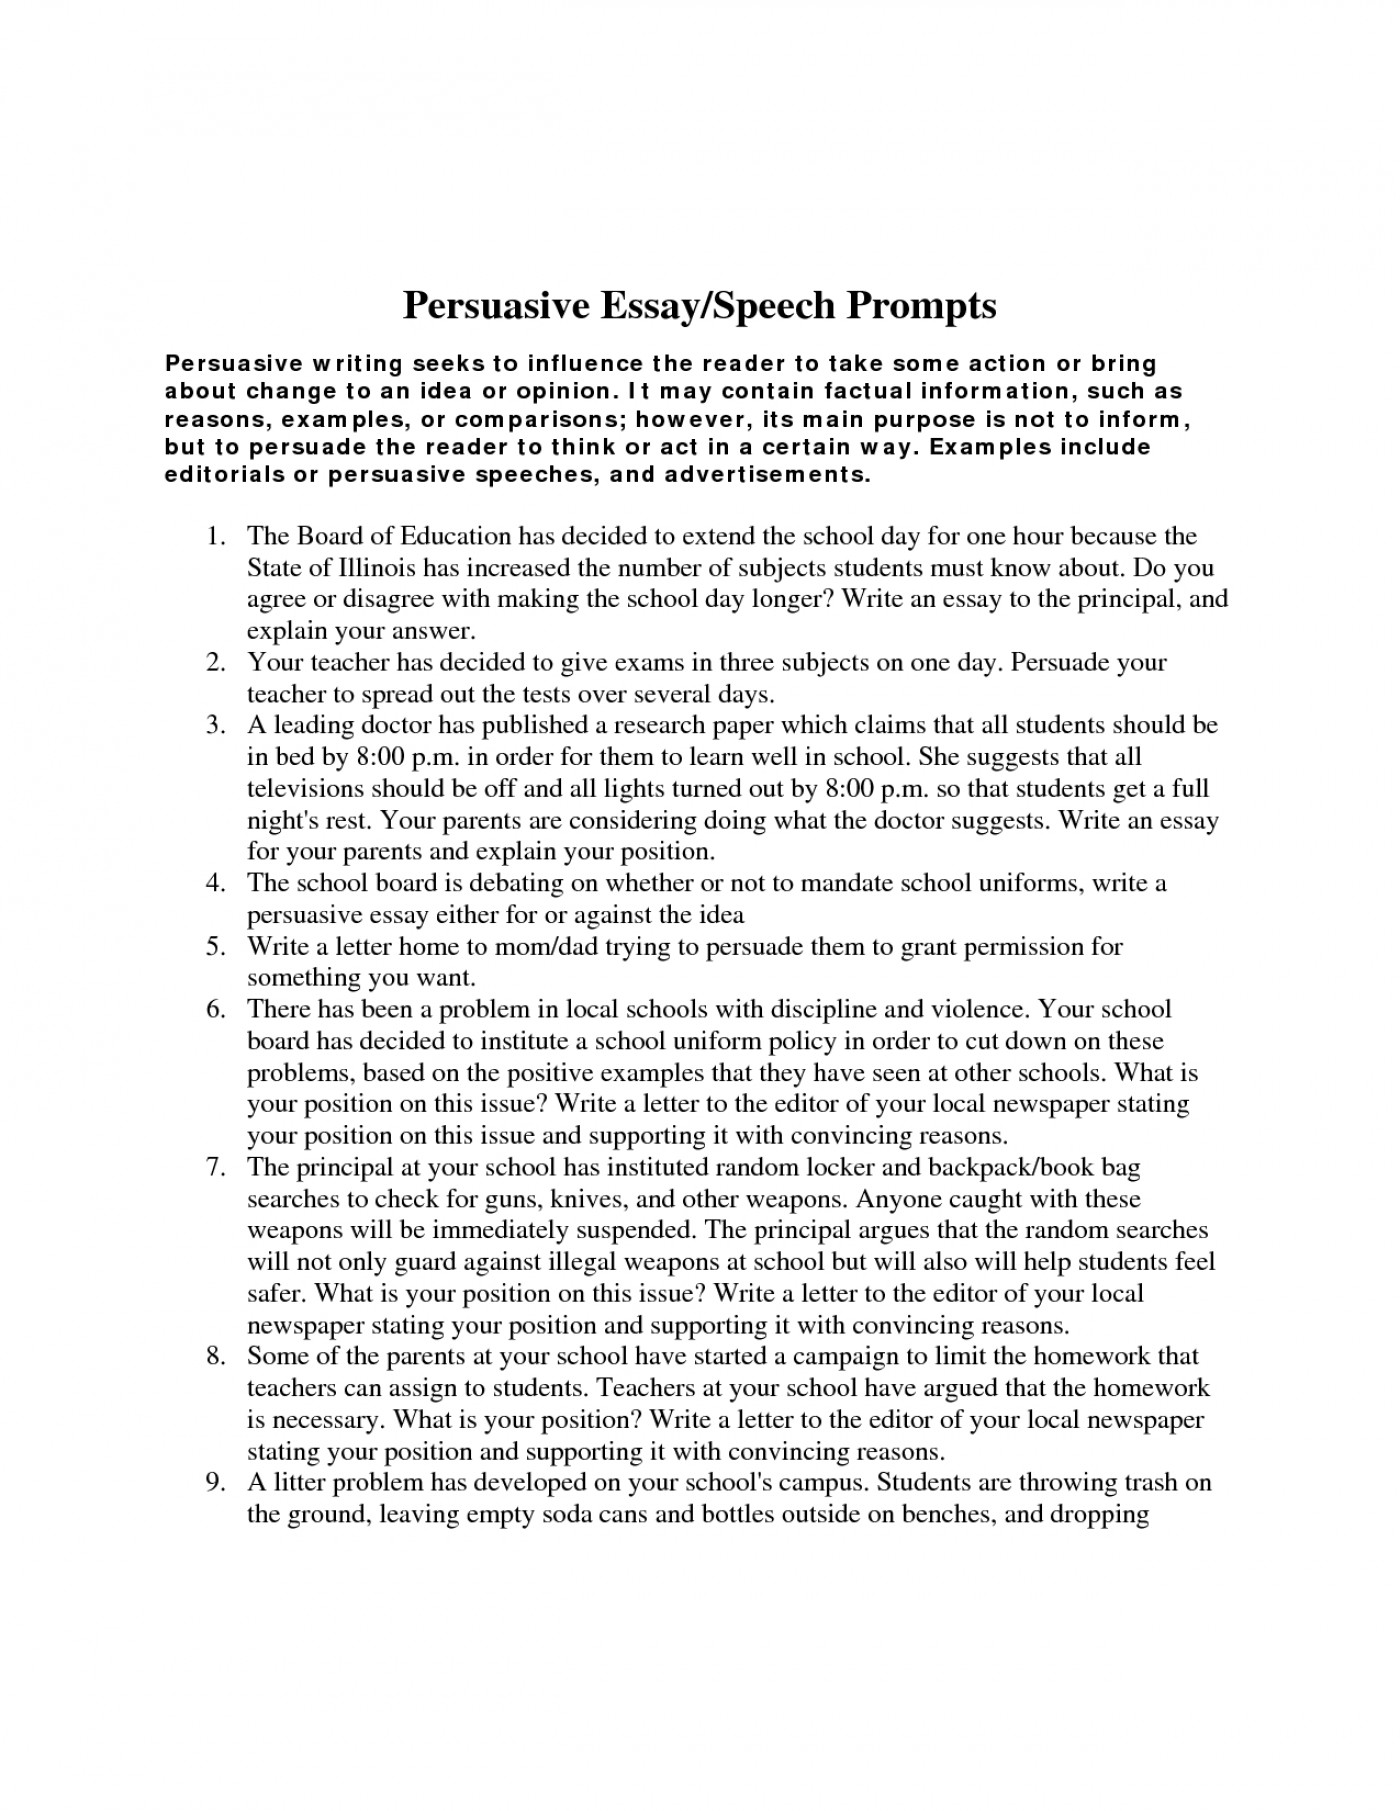 012 Essay Example Persuasive Prompts Informative Remarkable Topics 2018 For High School Prompt 4th Grade 1400